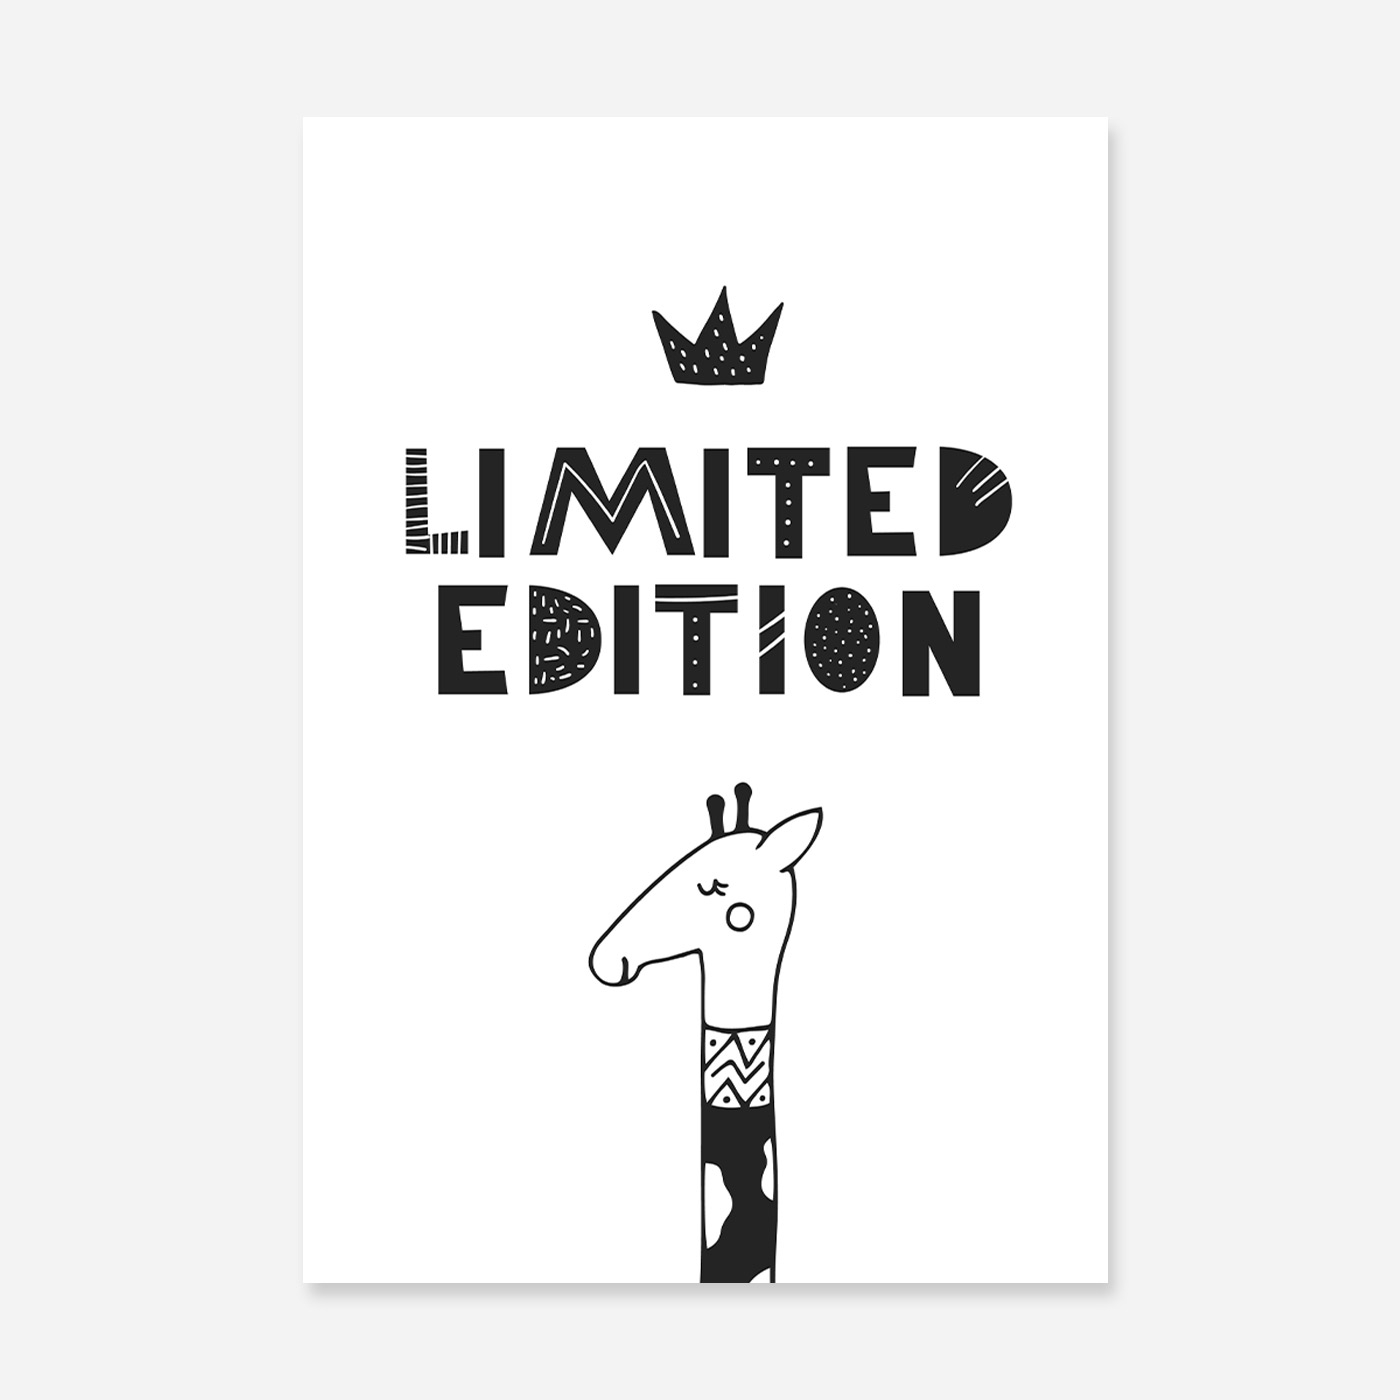 illustrated giraffe with head pocking from the bottom of the artwork in black and white.